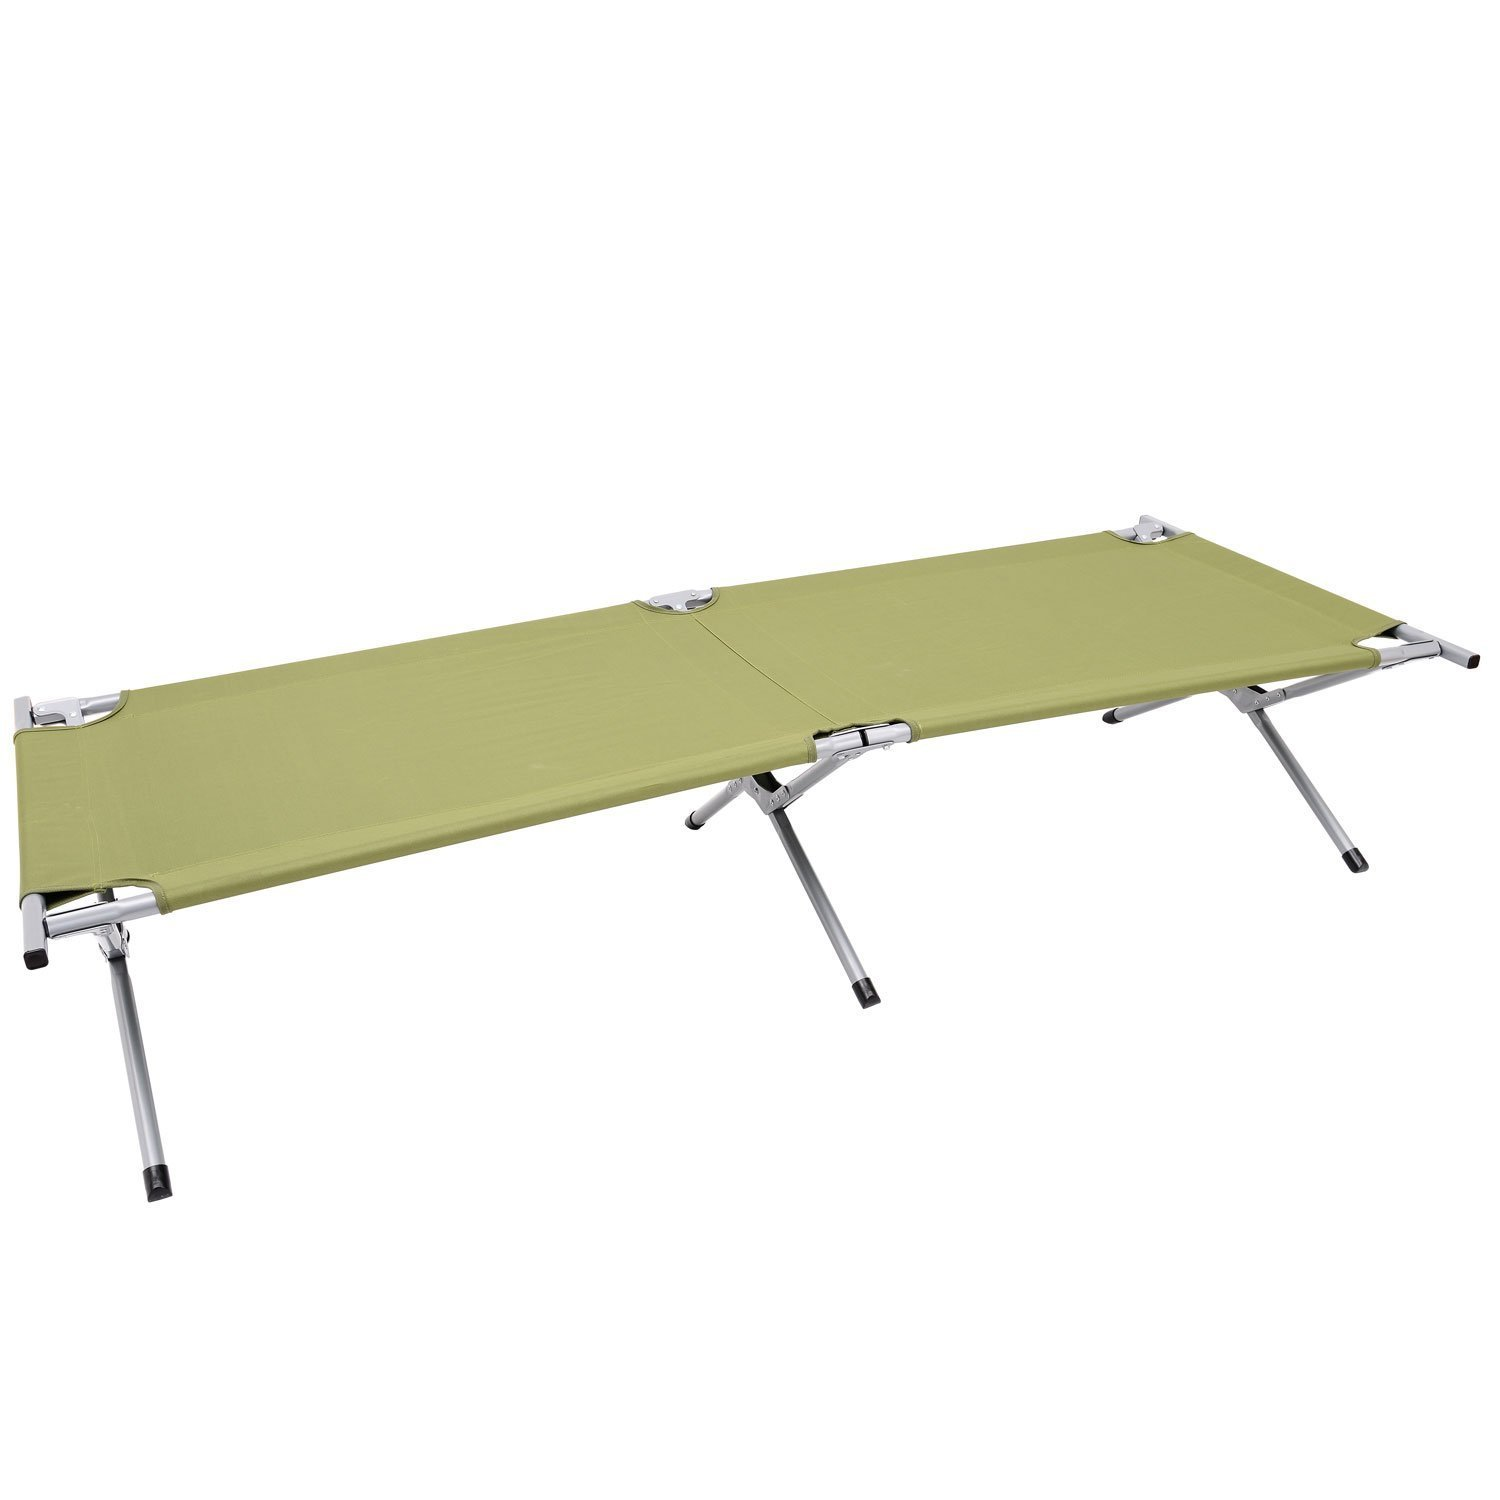 Outsunny Heavy-Duty Outdoor Folding Military Style Camping Cot - Green